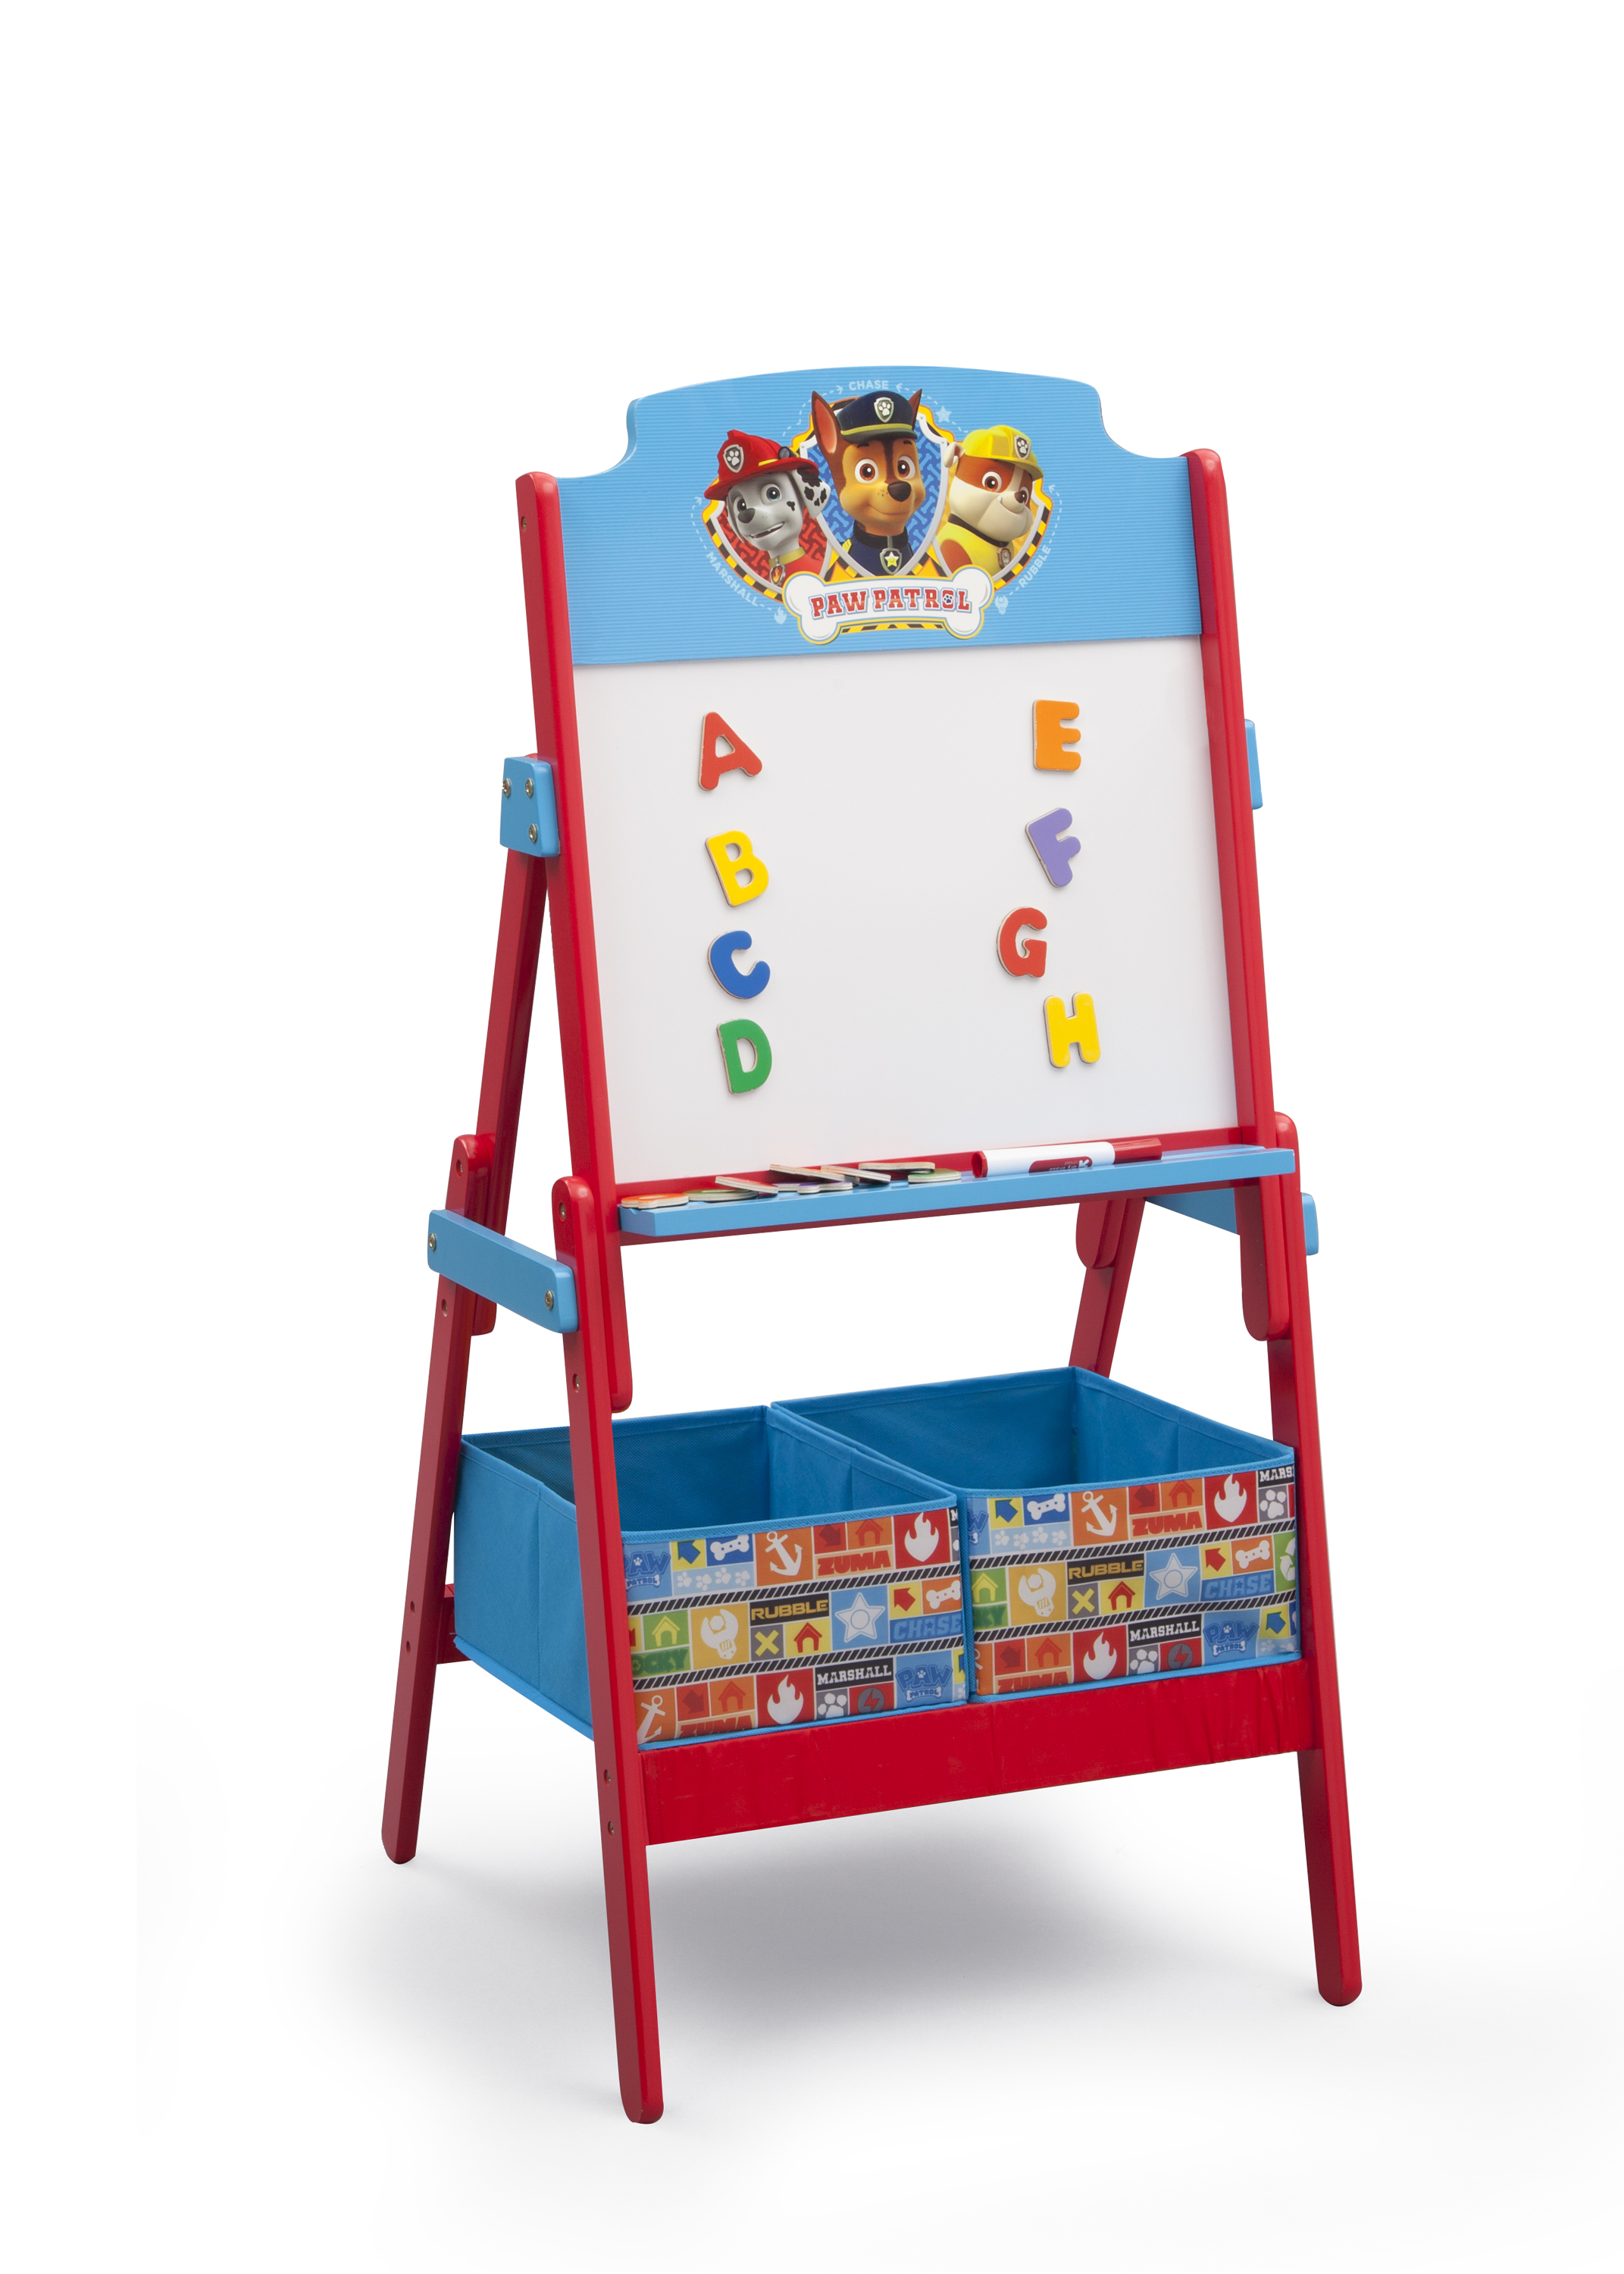 Paw Patrol Kids Toy Organizer Bin Children S Storage Box: Nick Jr. PAW Patrol Activity Easel With Fabric Toy Box